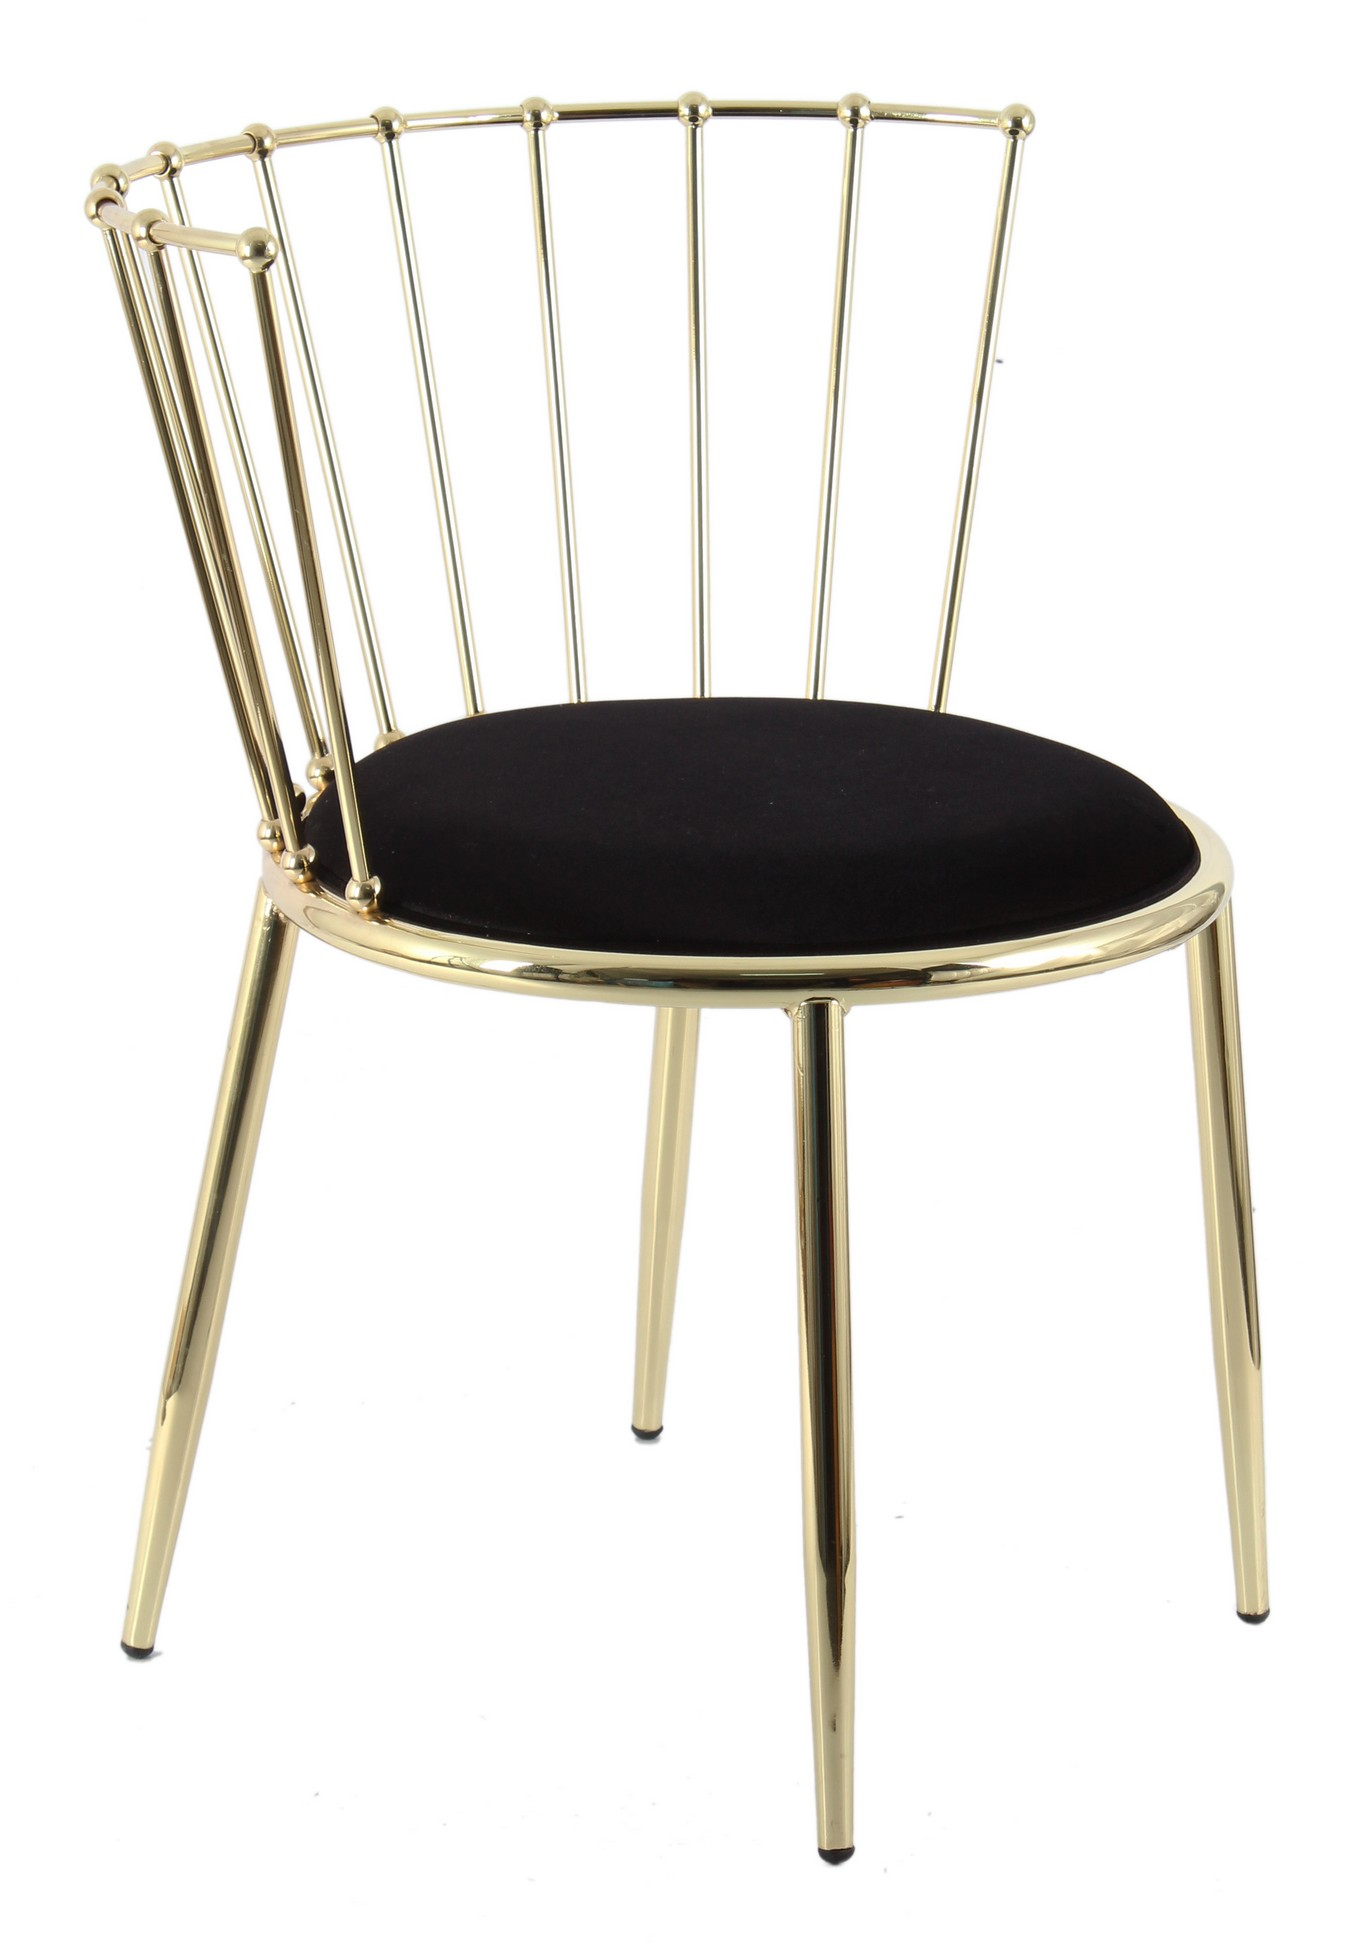 SRP ASE Brass Chair Seat Leather   Hotel Restaurant Cafe Furniture Turkey